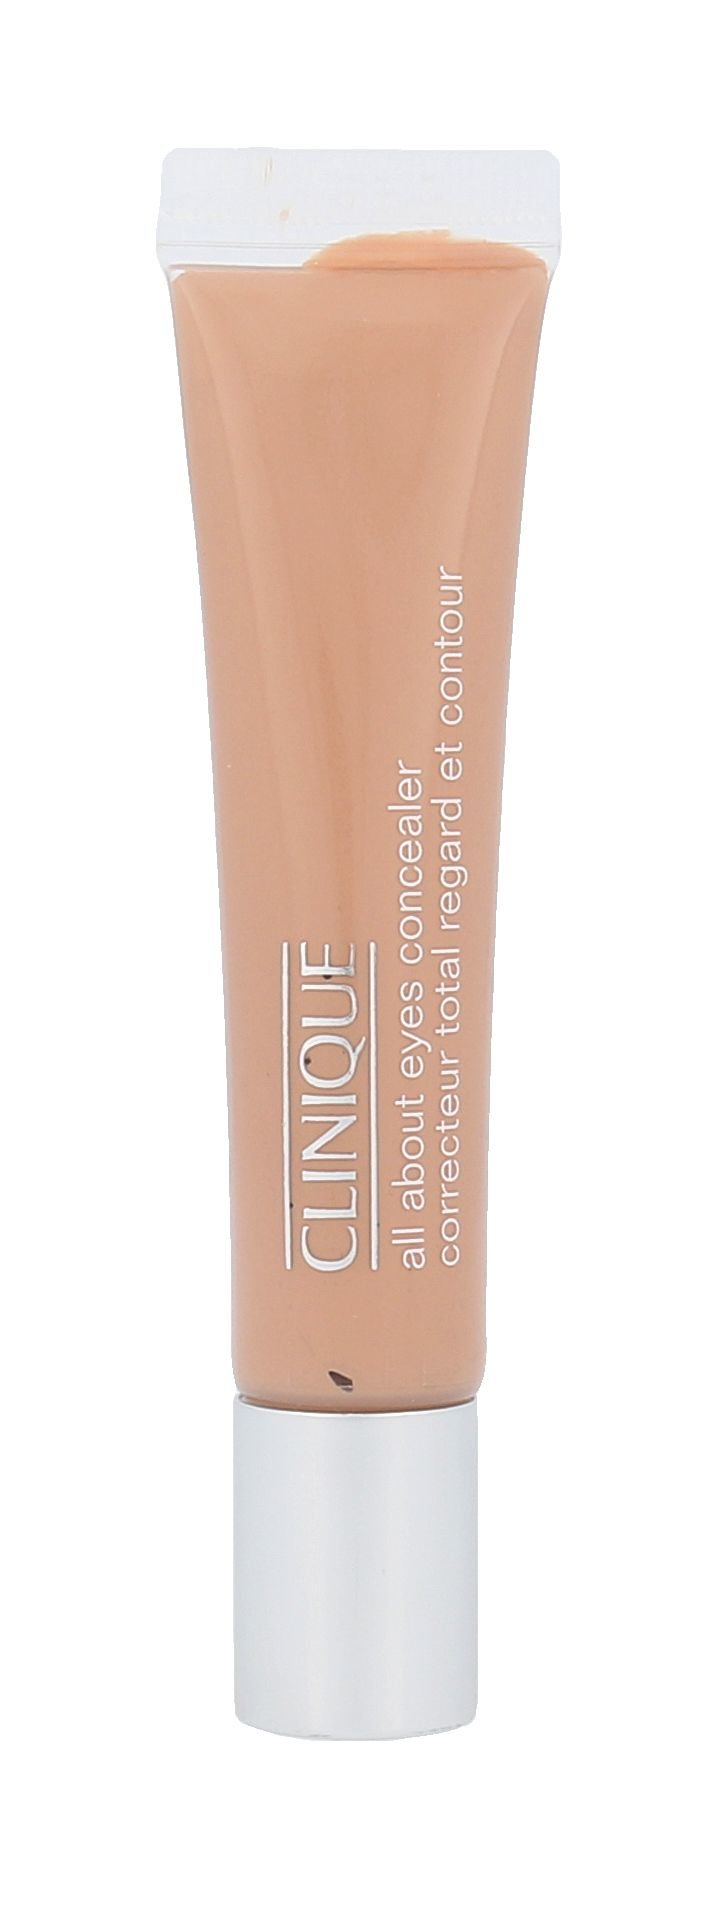 Clinique All About Eyes Cosmetic 10ml 03 Light Petal